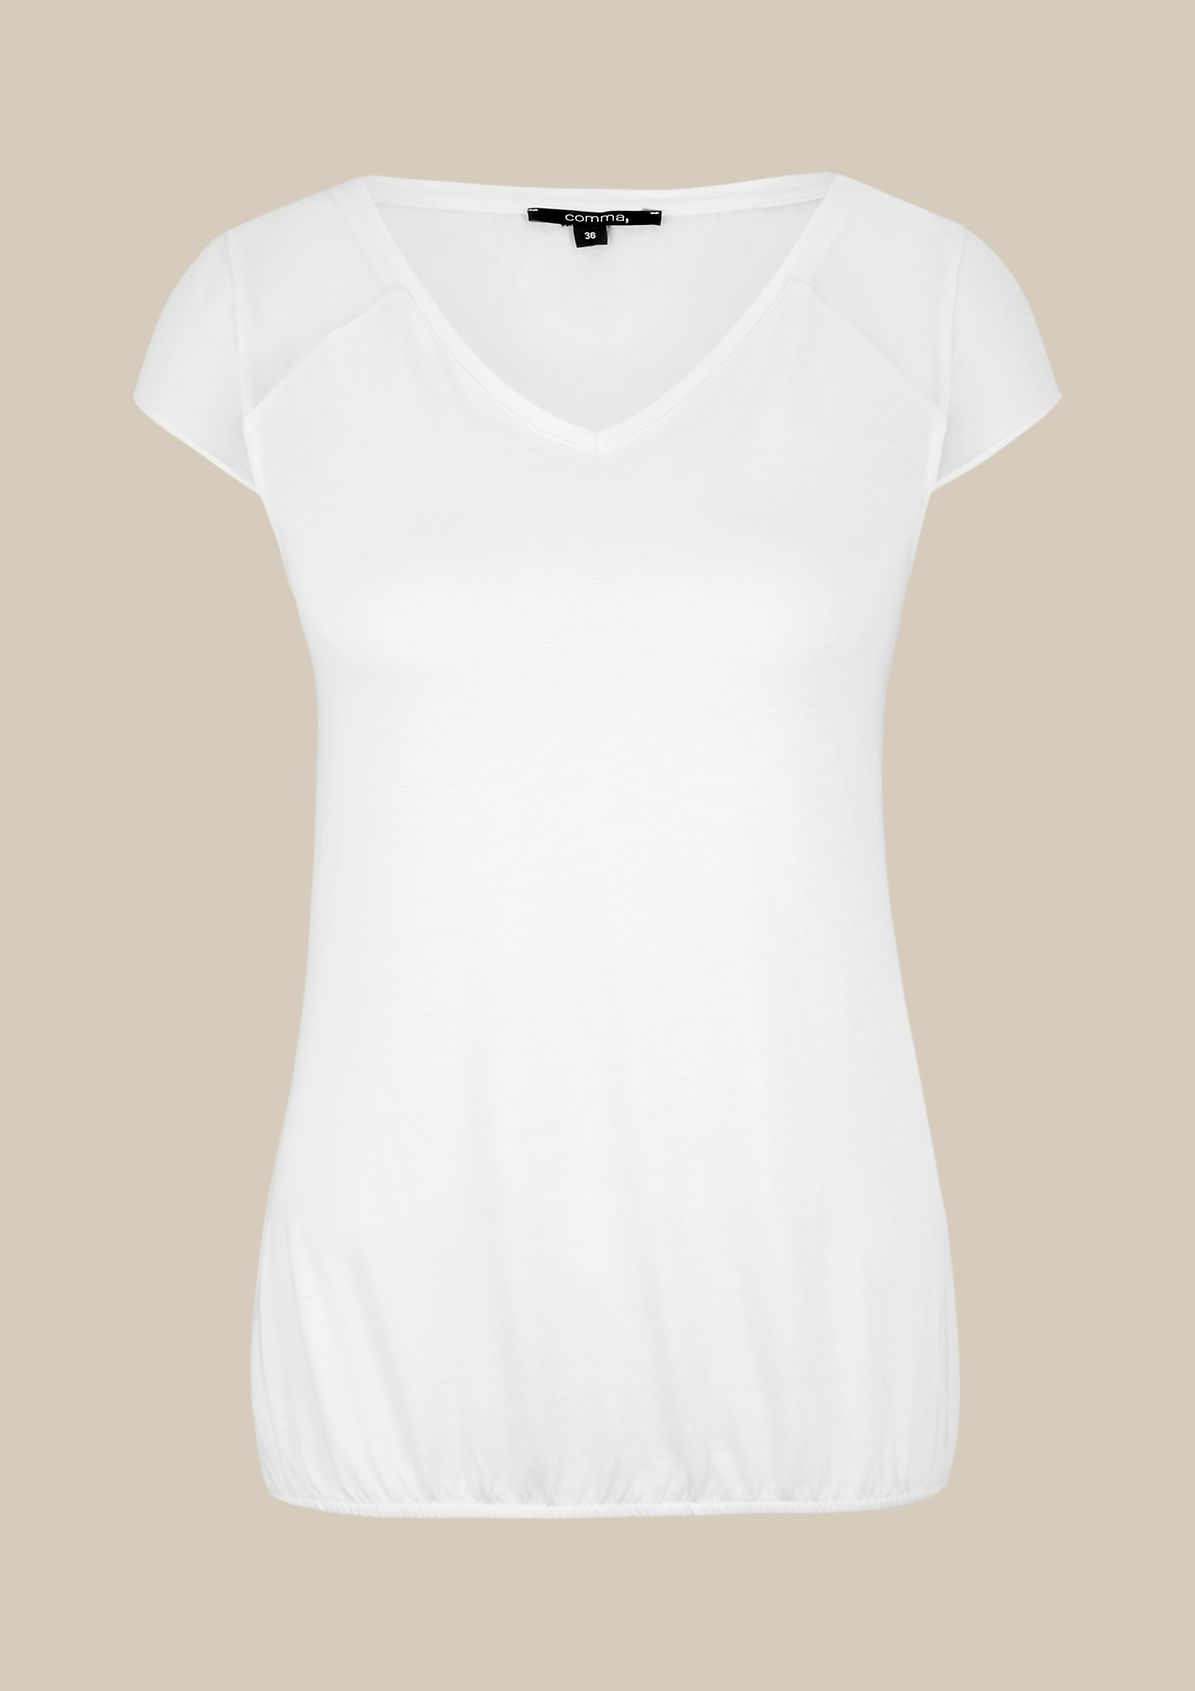 Lightweight summer top with sophisticated details from s.Oliver